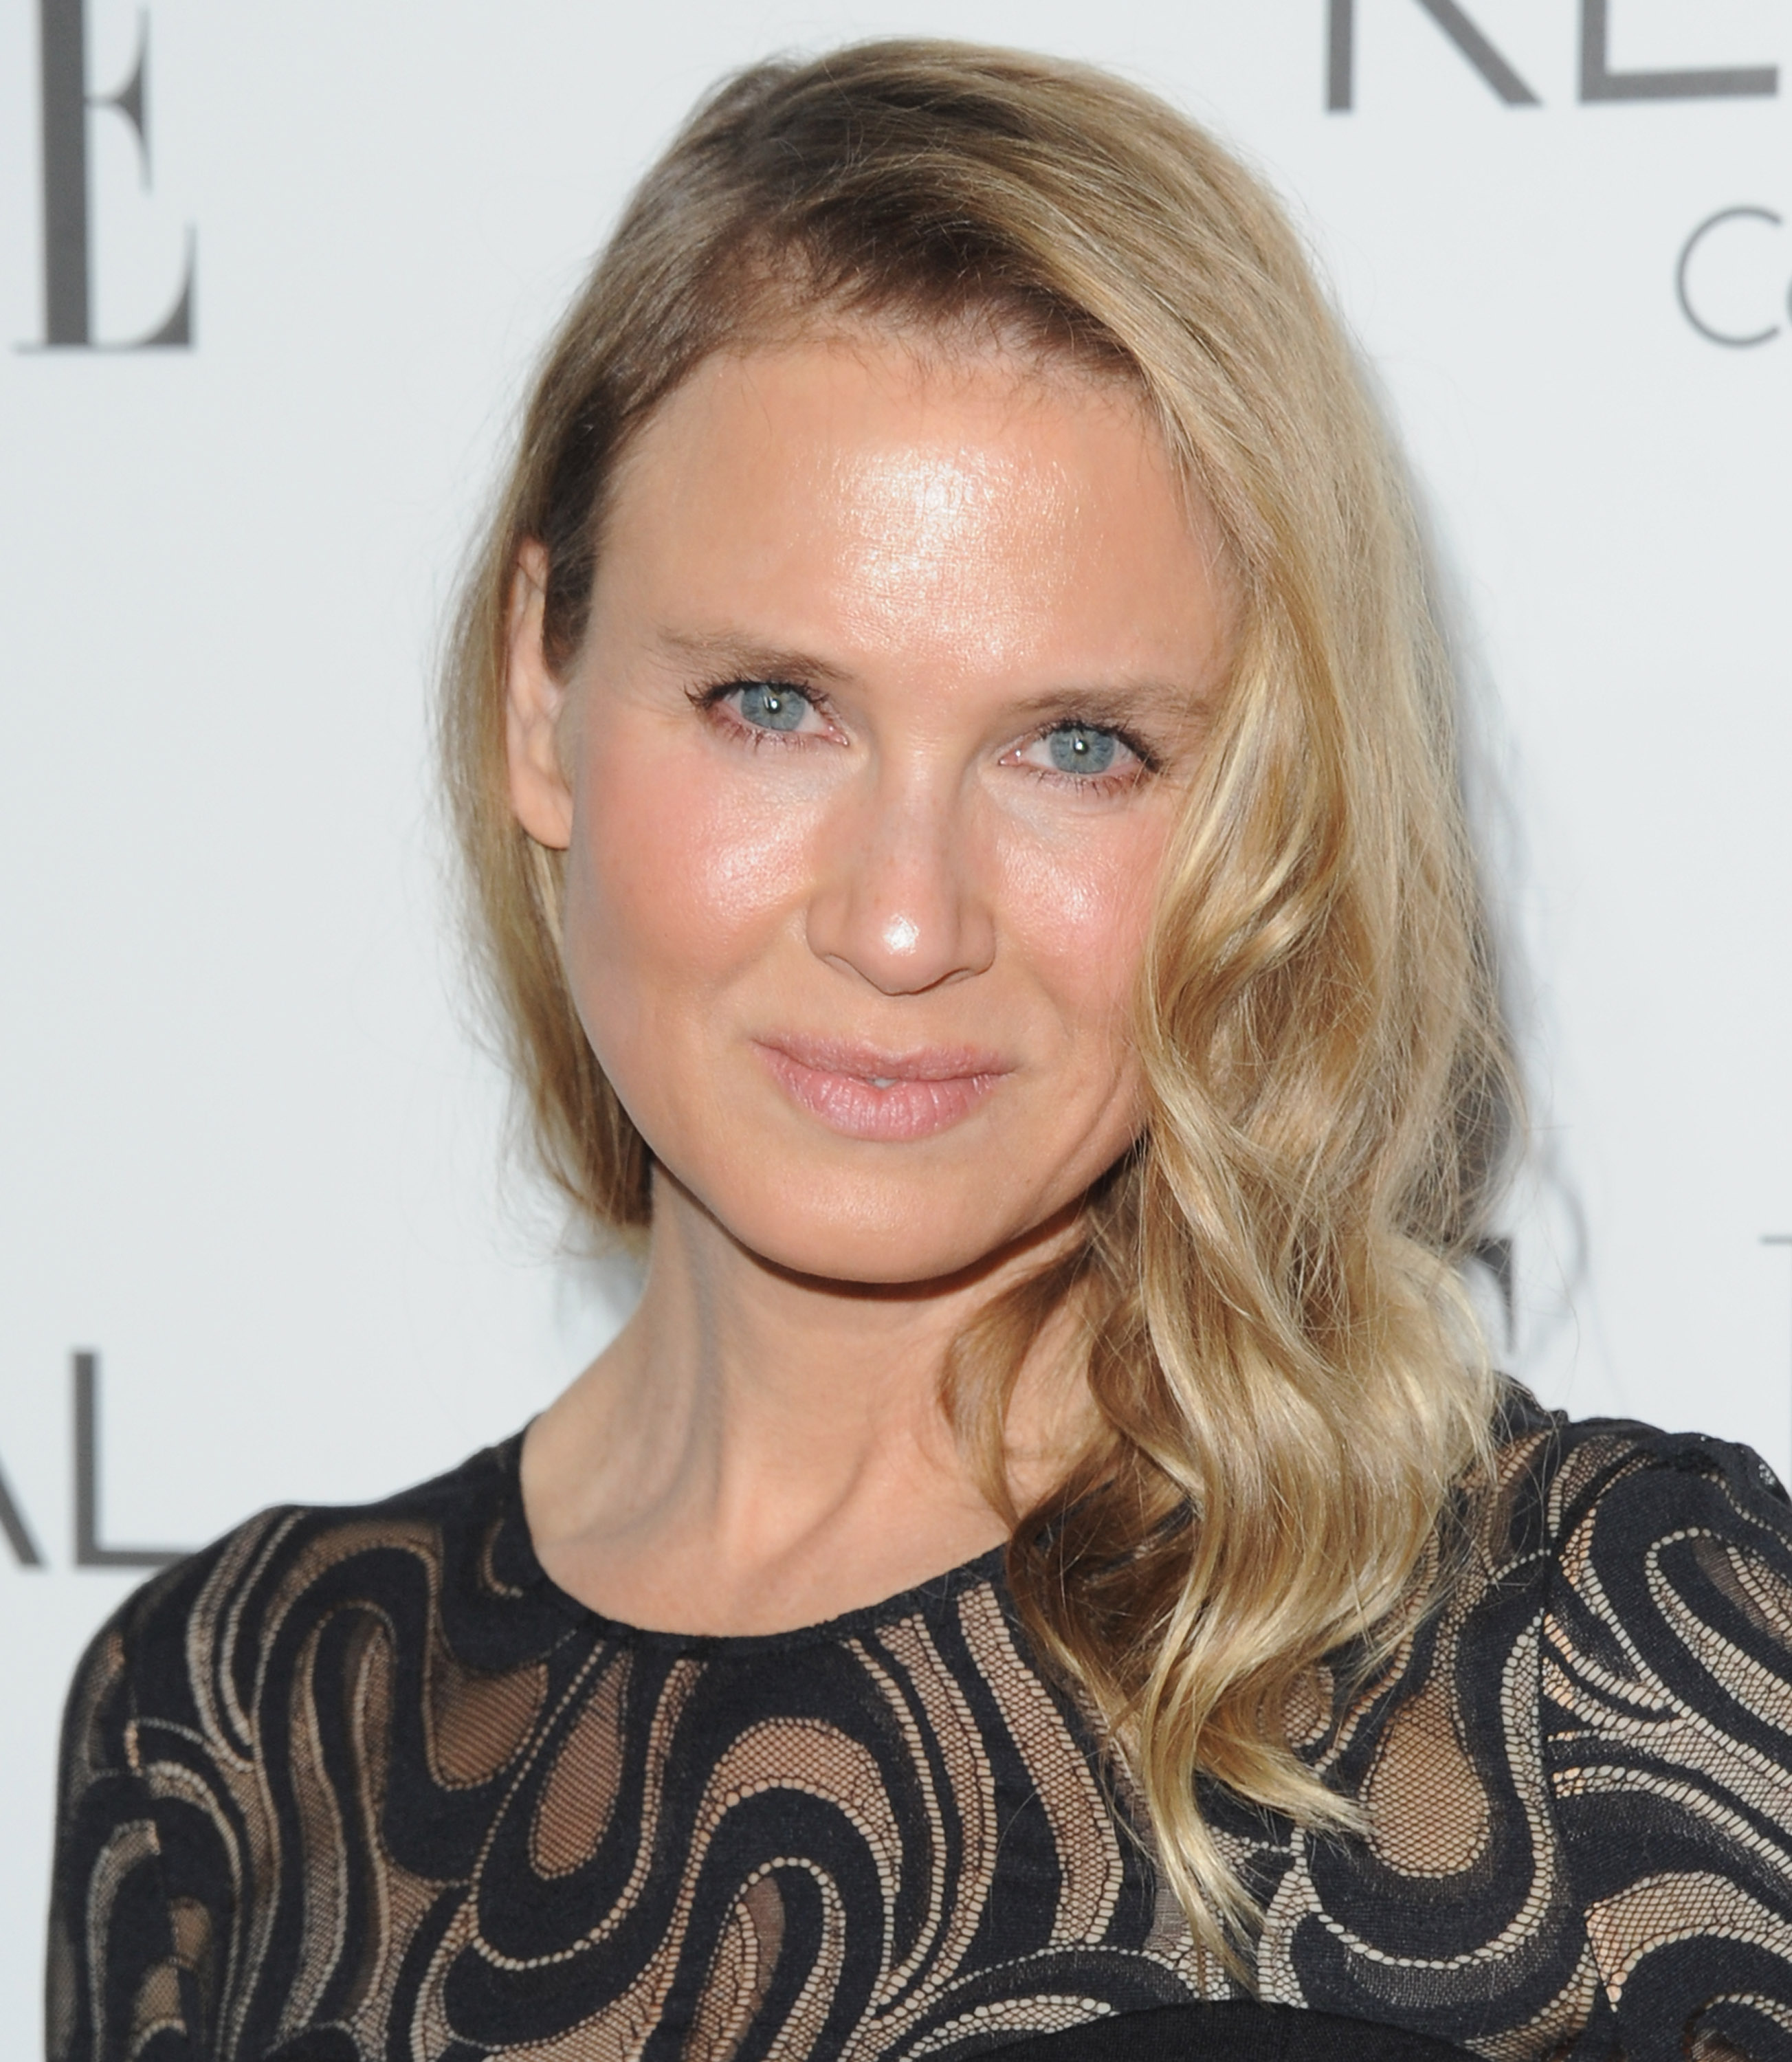 Actress Renée Zellweger arrives at the 21st Annual ELLE Women In Hollywood Awards on October 20, 2014 in Beverly Hills, California.